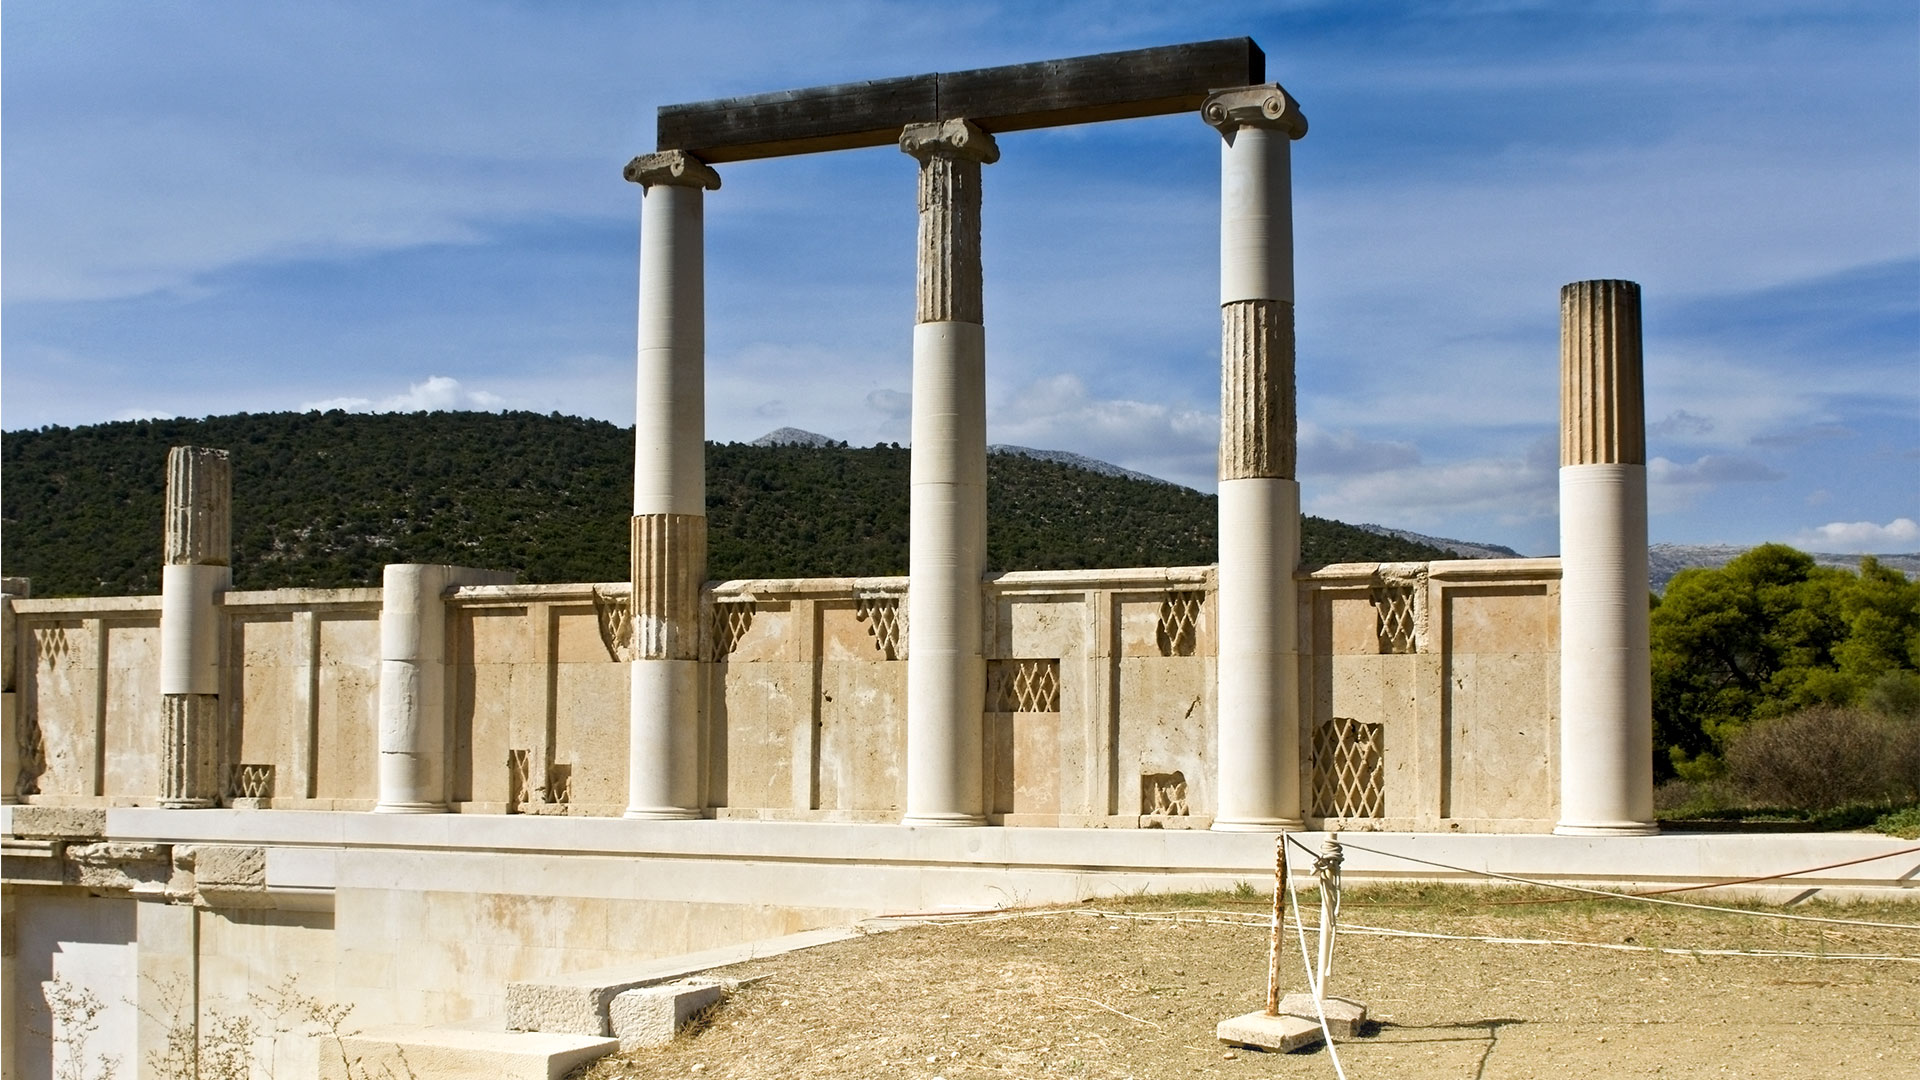 The Temple of Asclepius and Avaton at Ancient Epidaurus in Peloponnese